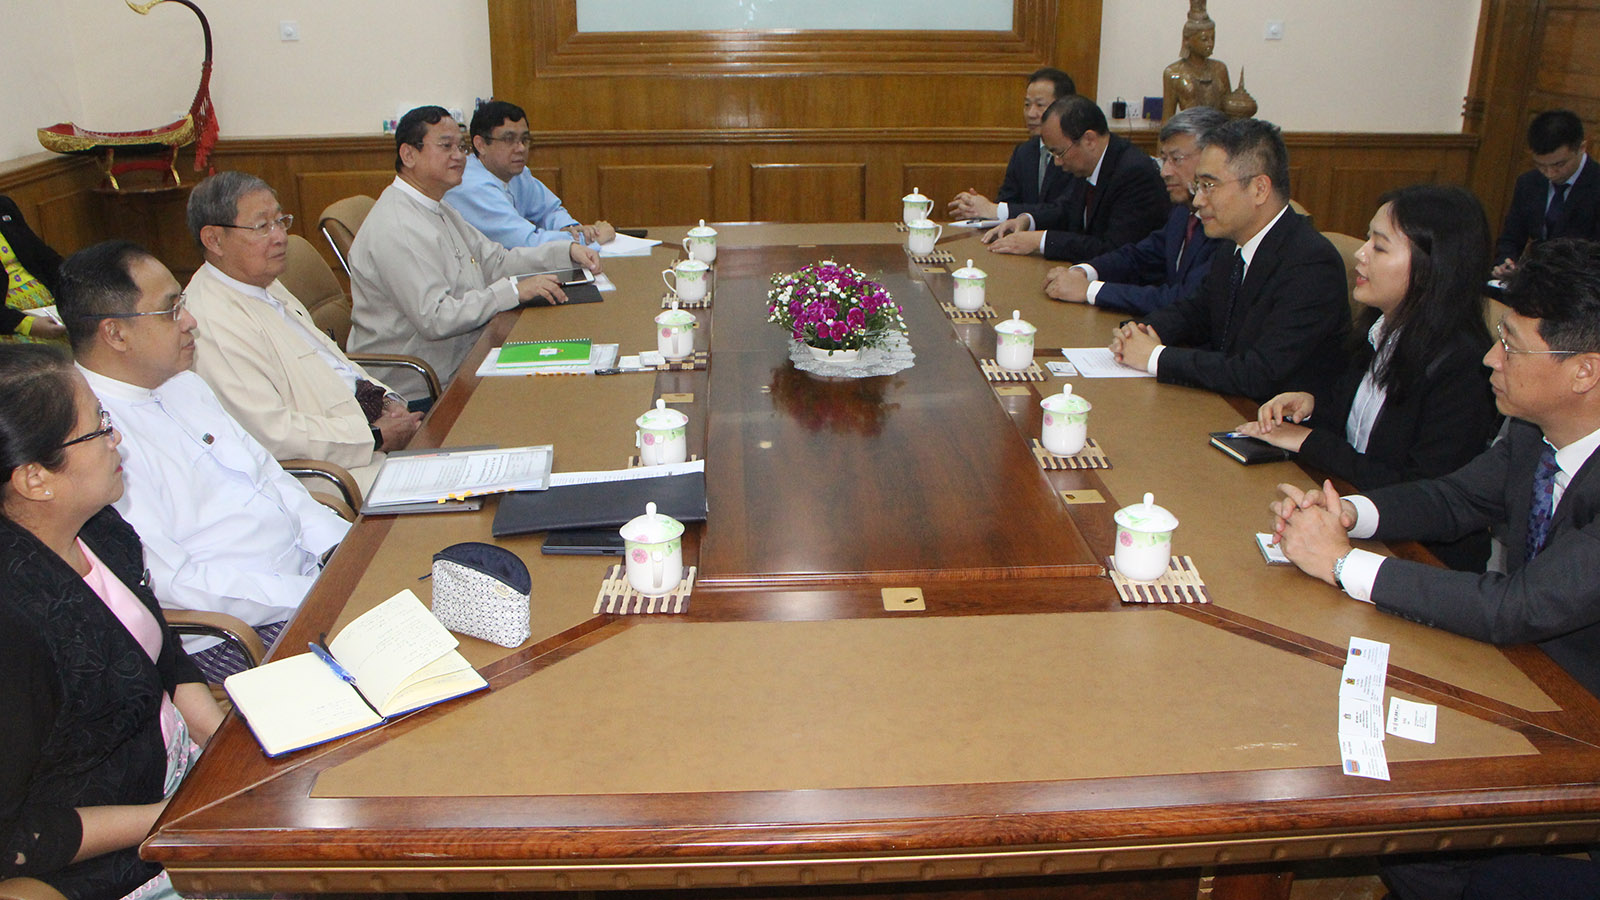 Union Minister U Soe Thein meets with President of the Industrial and Commercial Bank of China (ICBC) Mr Gu Shu in Nay Pyi Taw yesterday.Photo: MNA